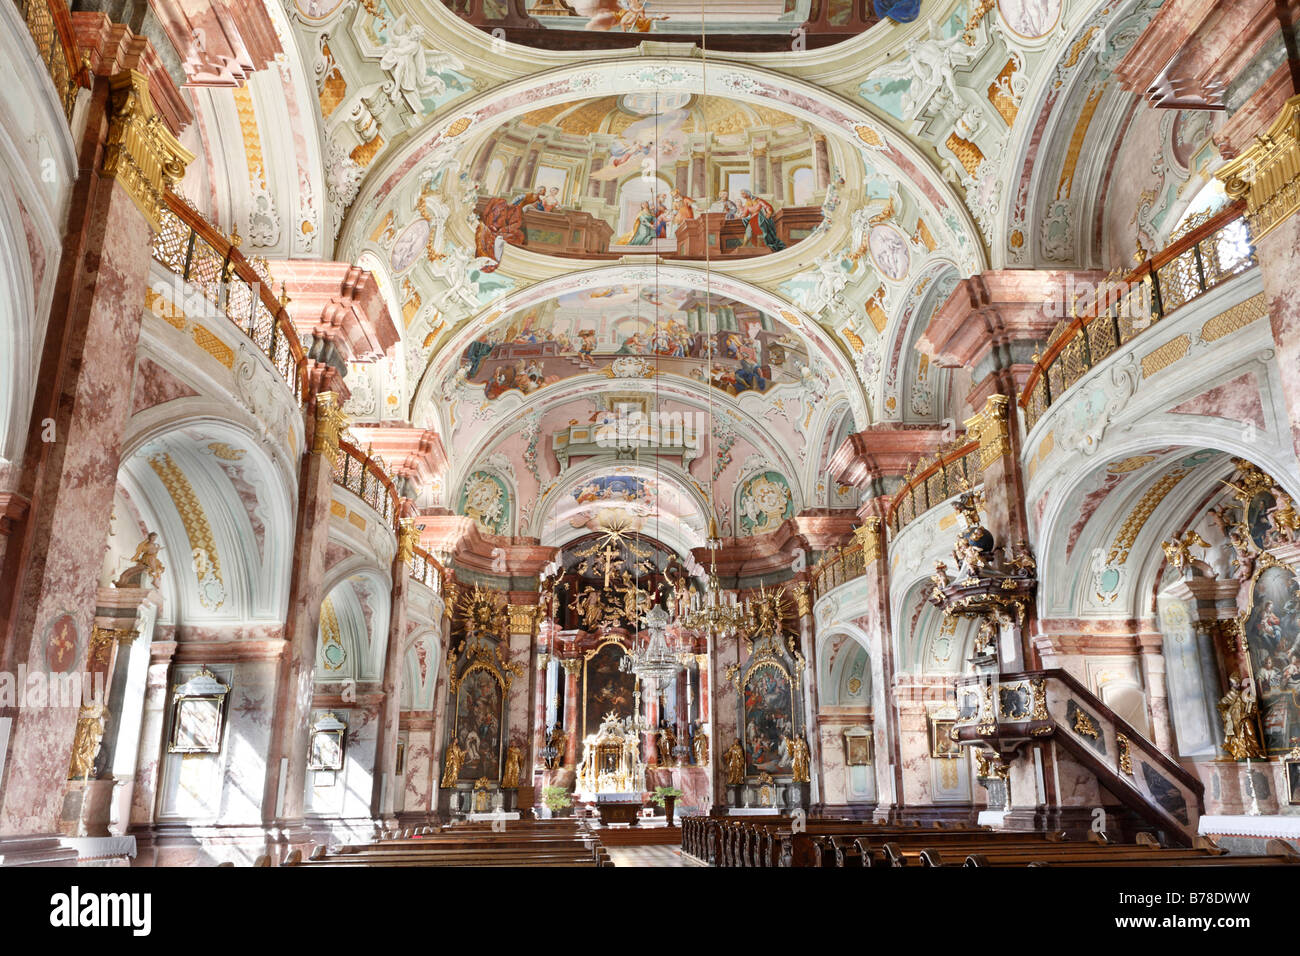 Interior, Stiftskirche, Collegiate church, Cistercian monastery, Rein Abbey, Styria, Austria, Europe - Stock Image